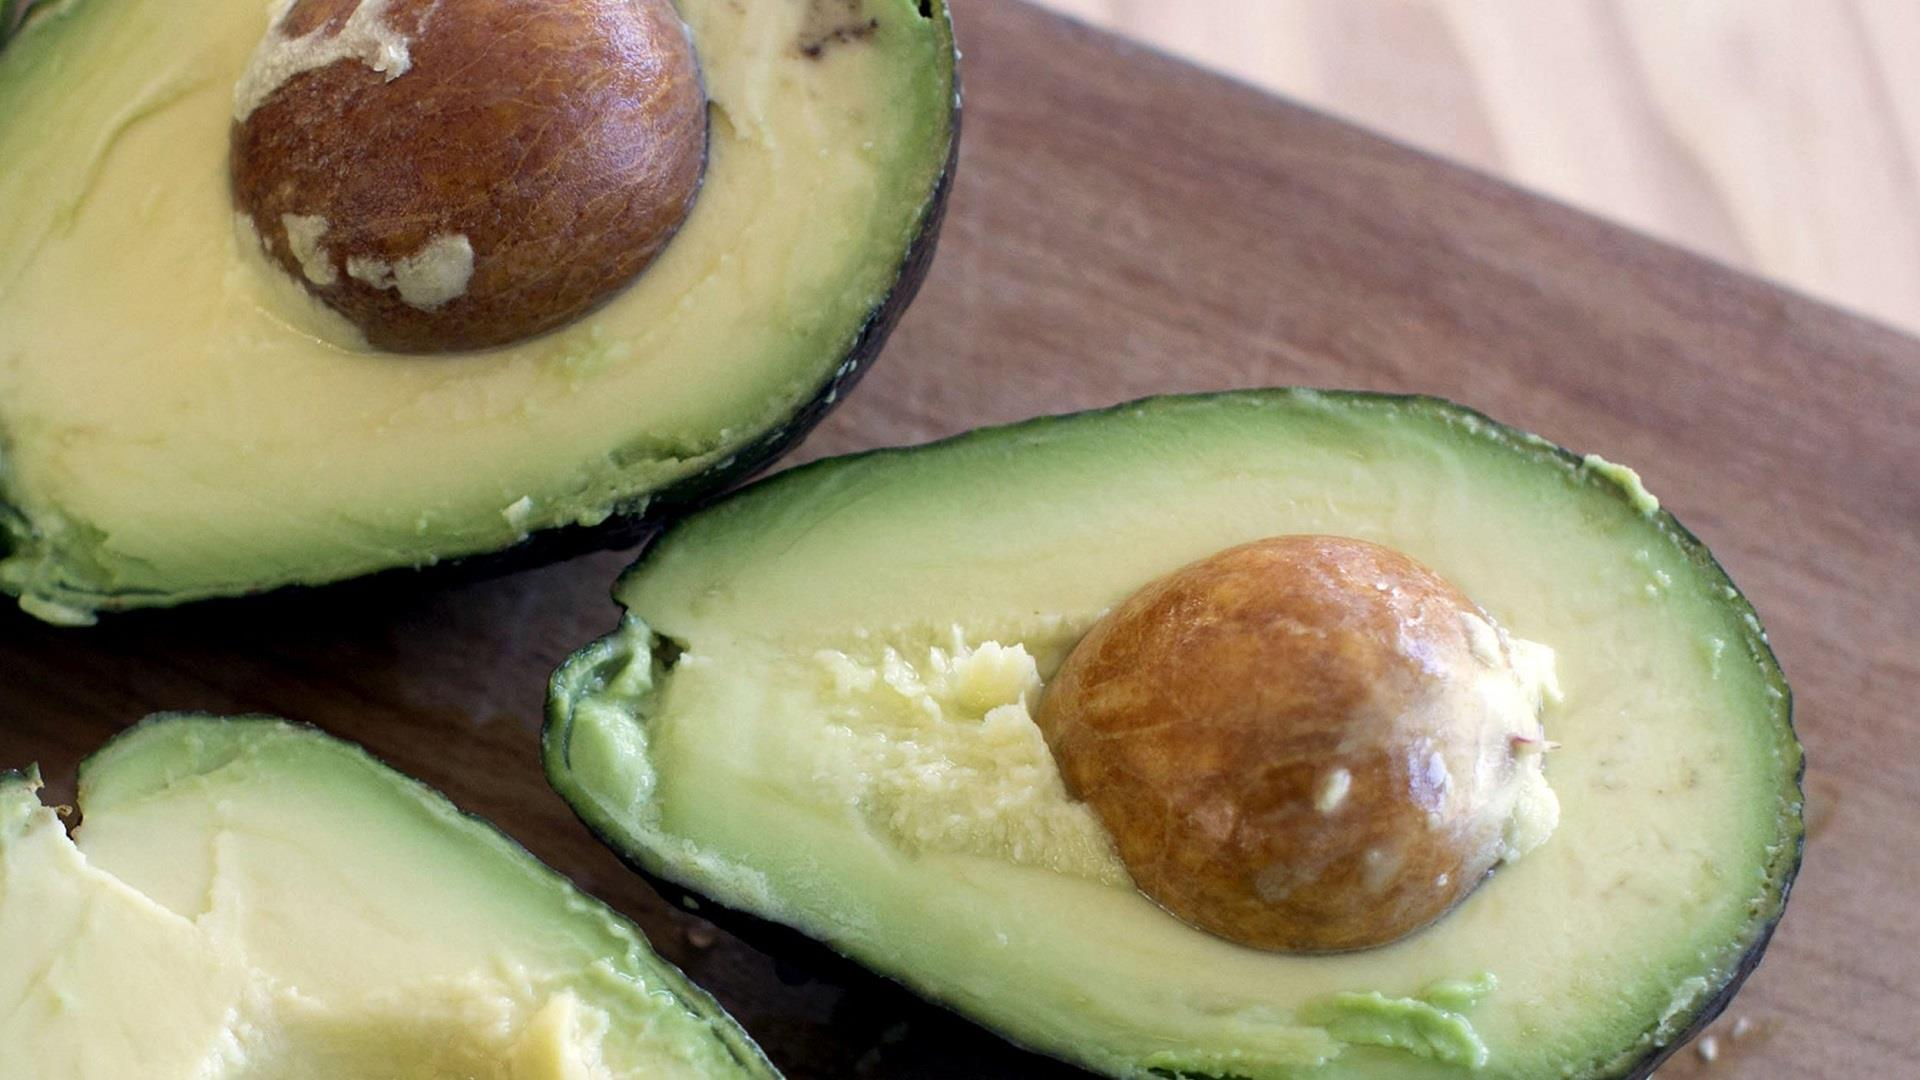 The health benefits of avocados (plus 11 delicious recipe ideas)